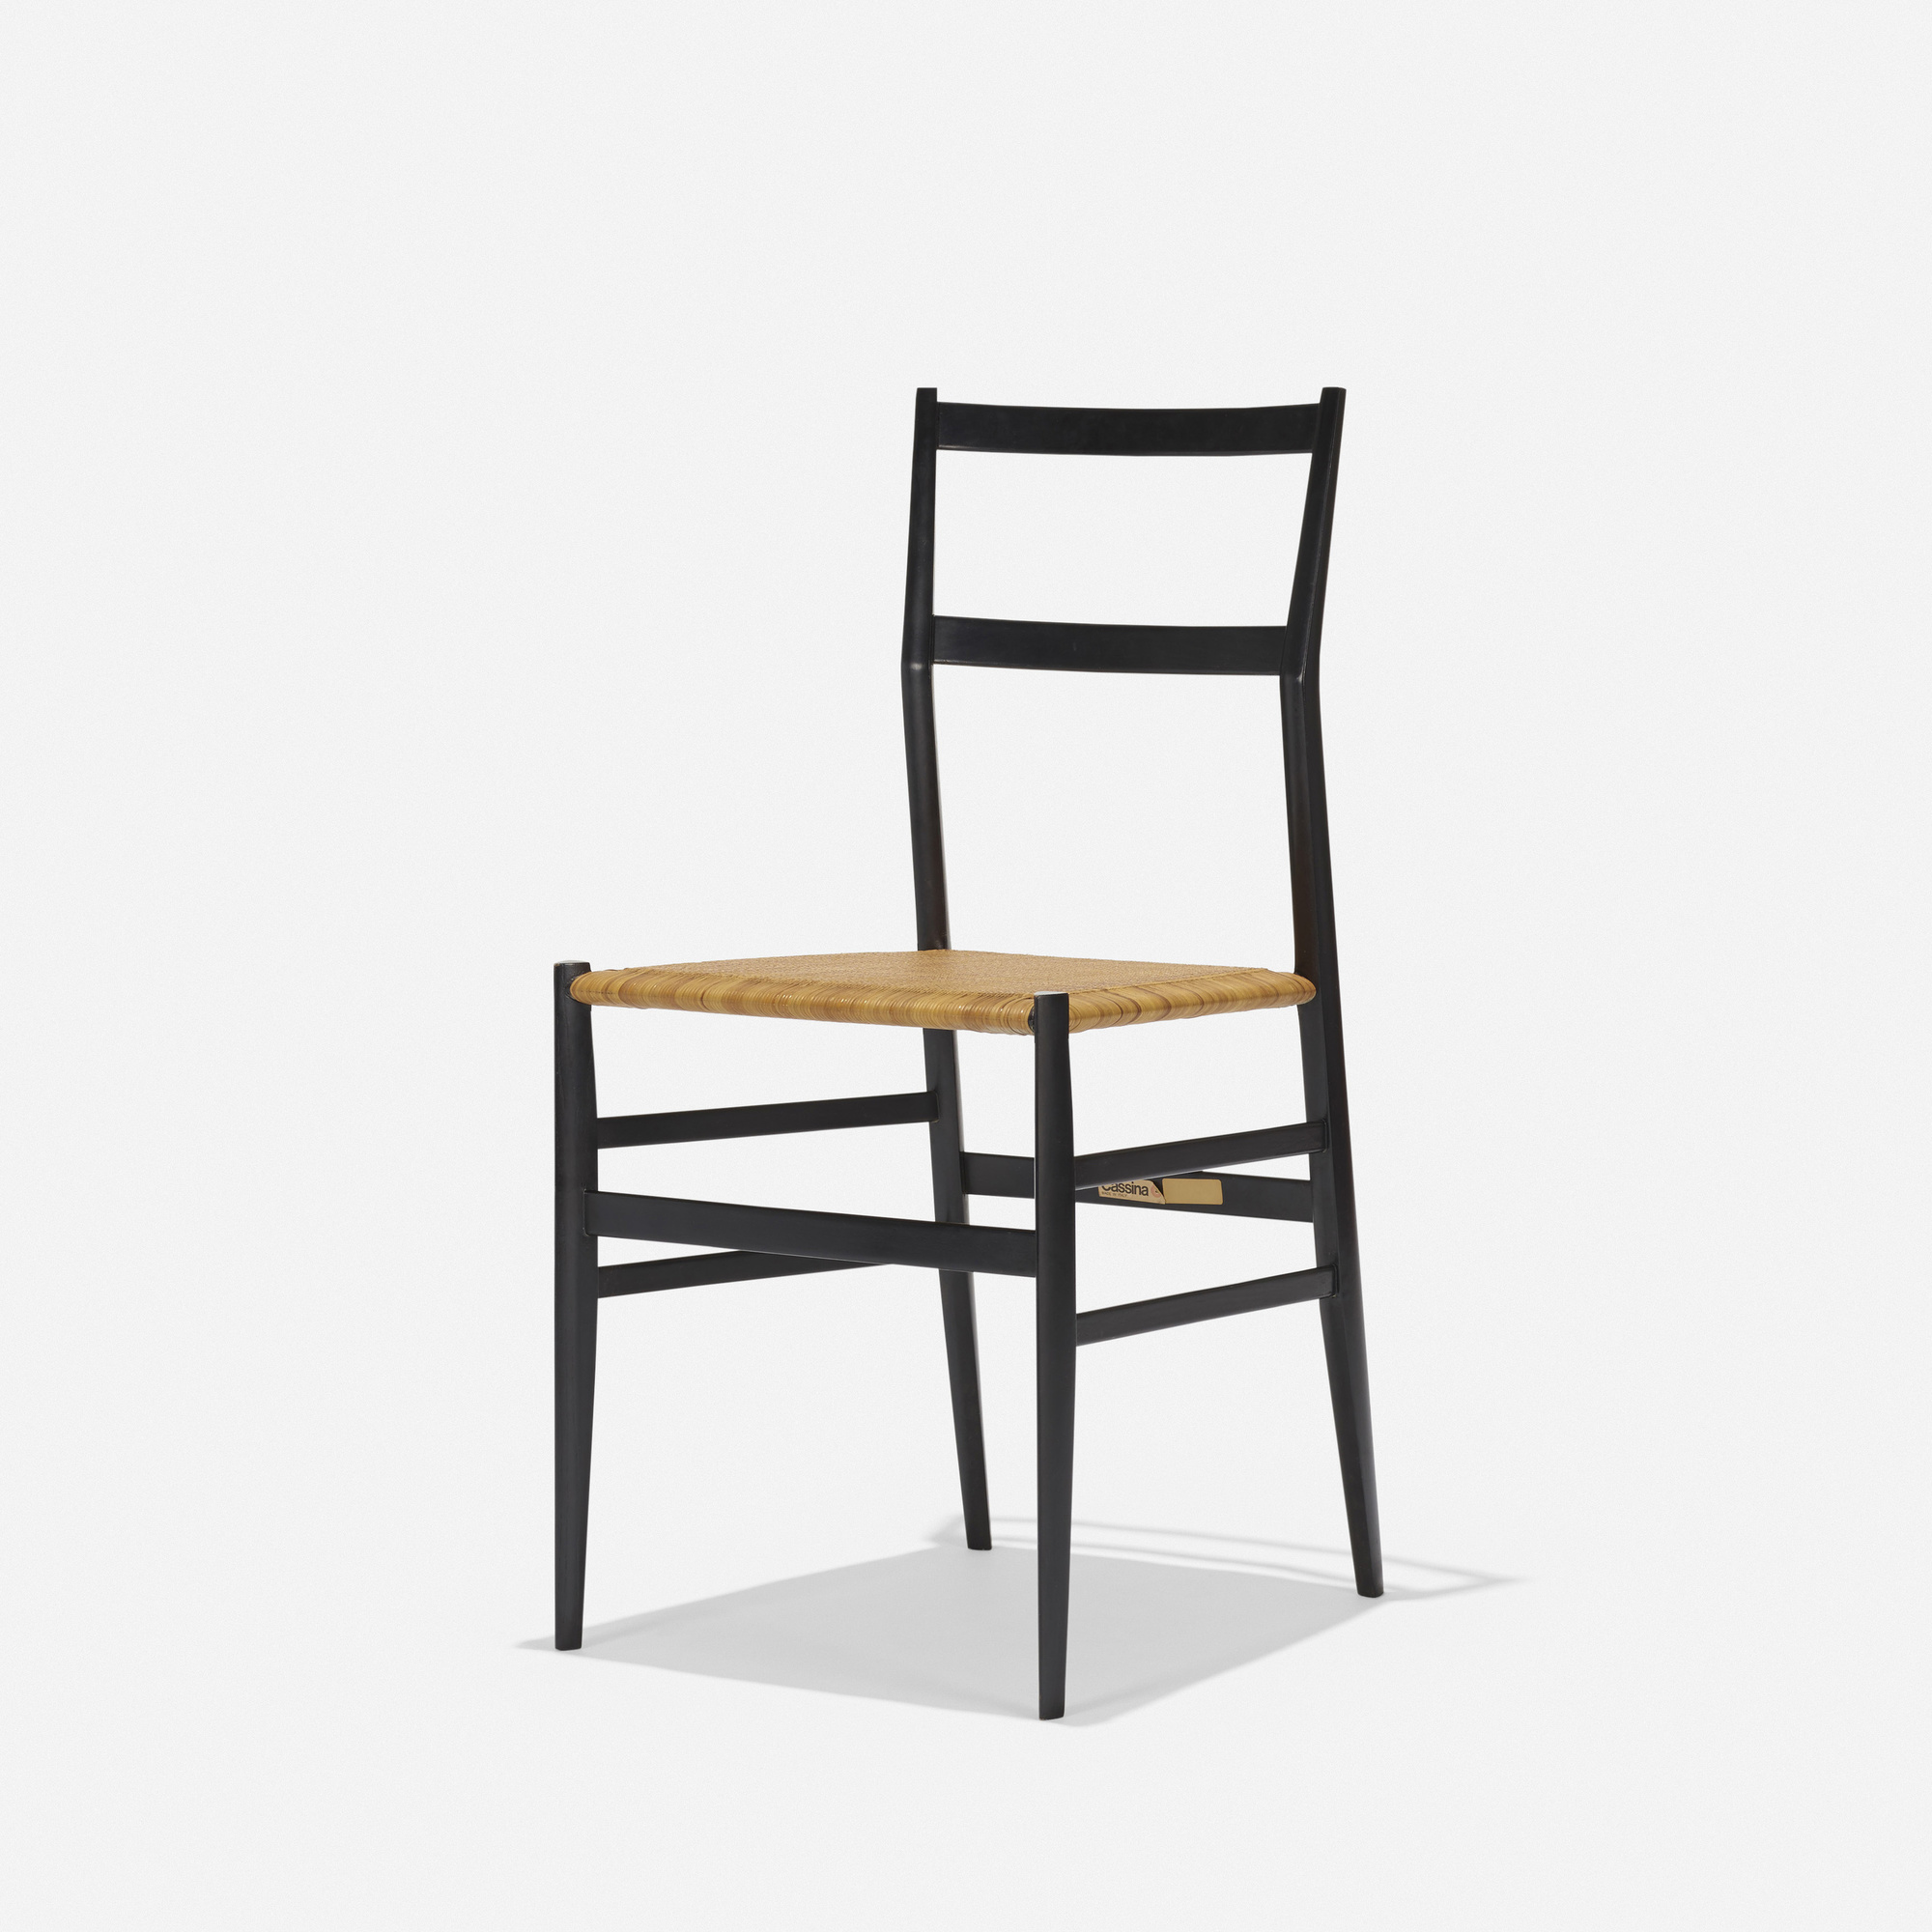 427: Gio Ponti / Superleggera chair (1 of 3)